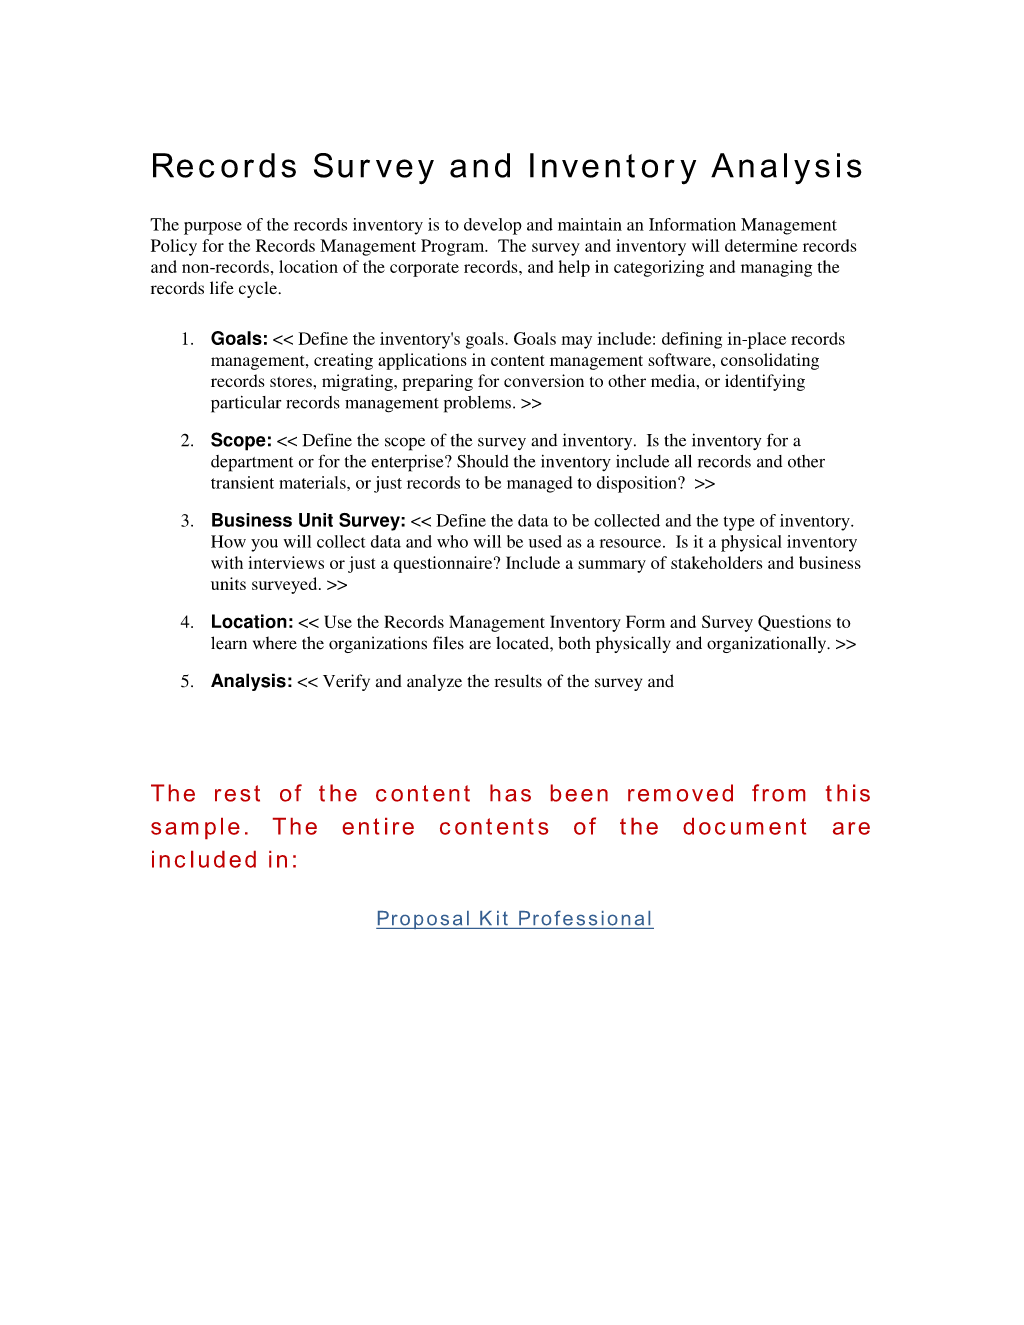 Sample Records Inventory Worksheet  The Sample Records Inventory